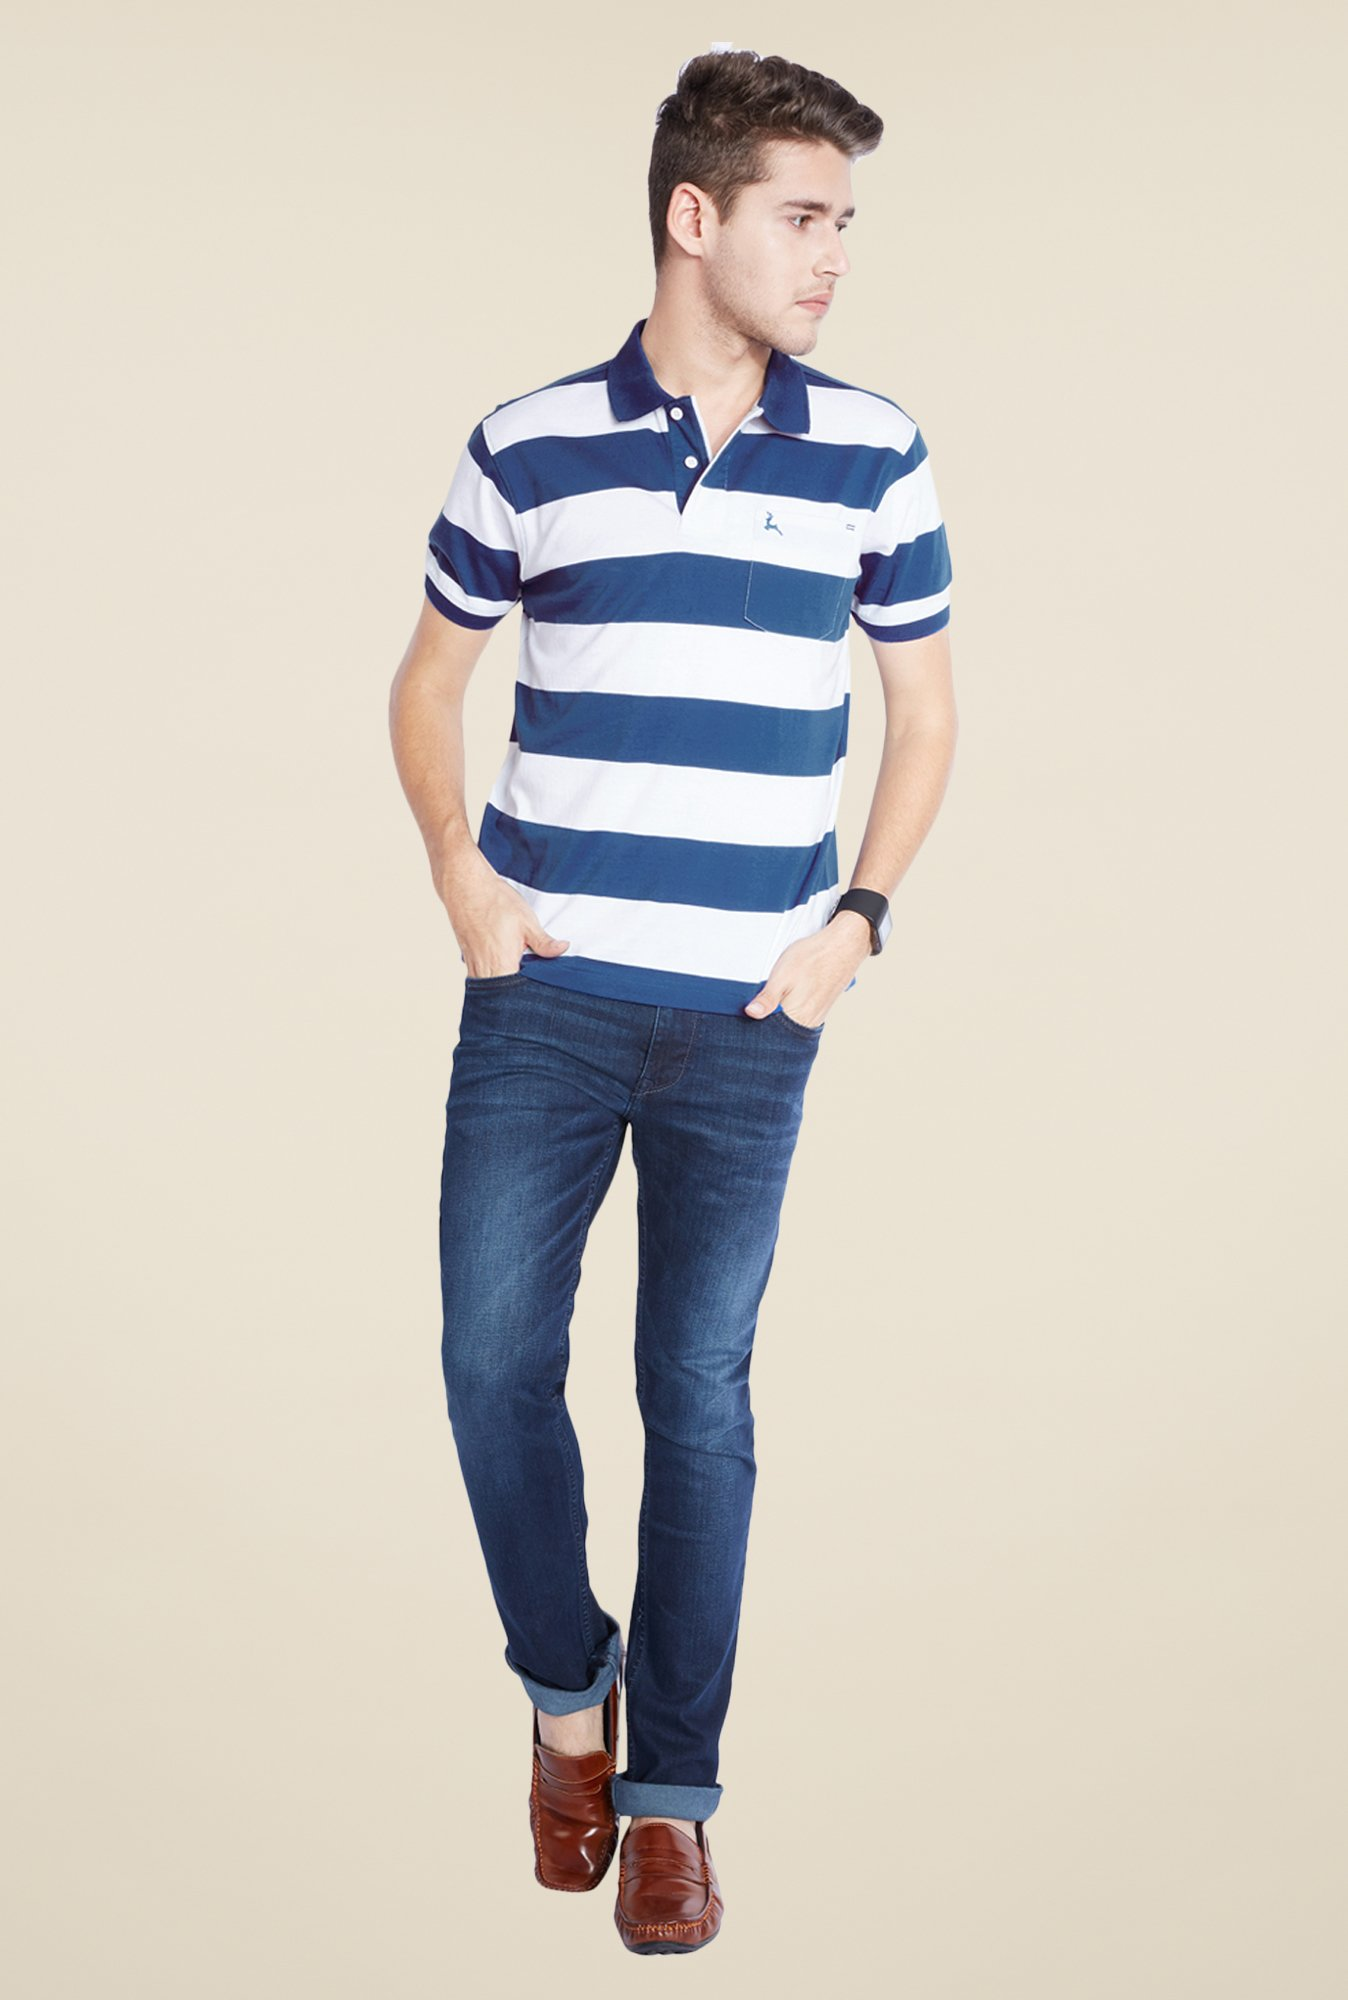 Parx Blue & White Striped T Shirt